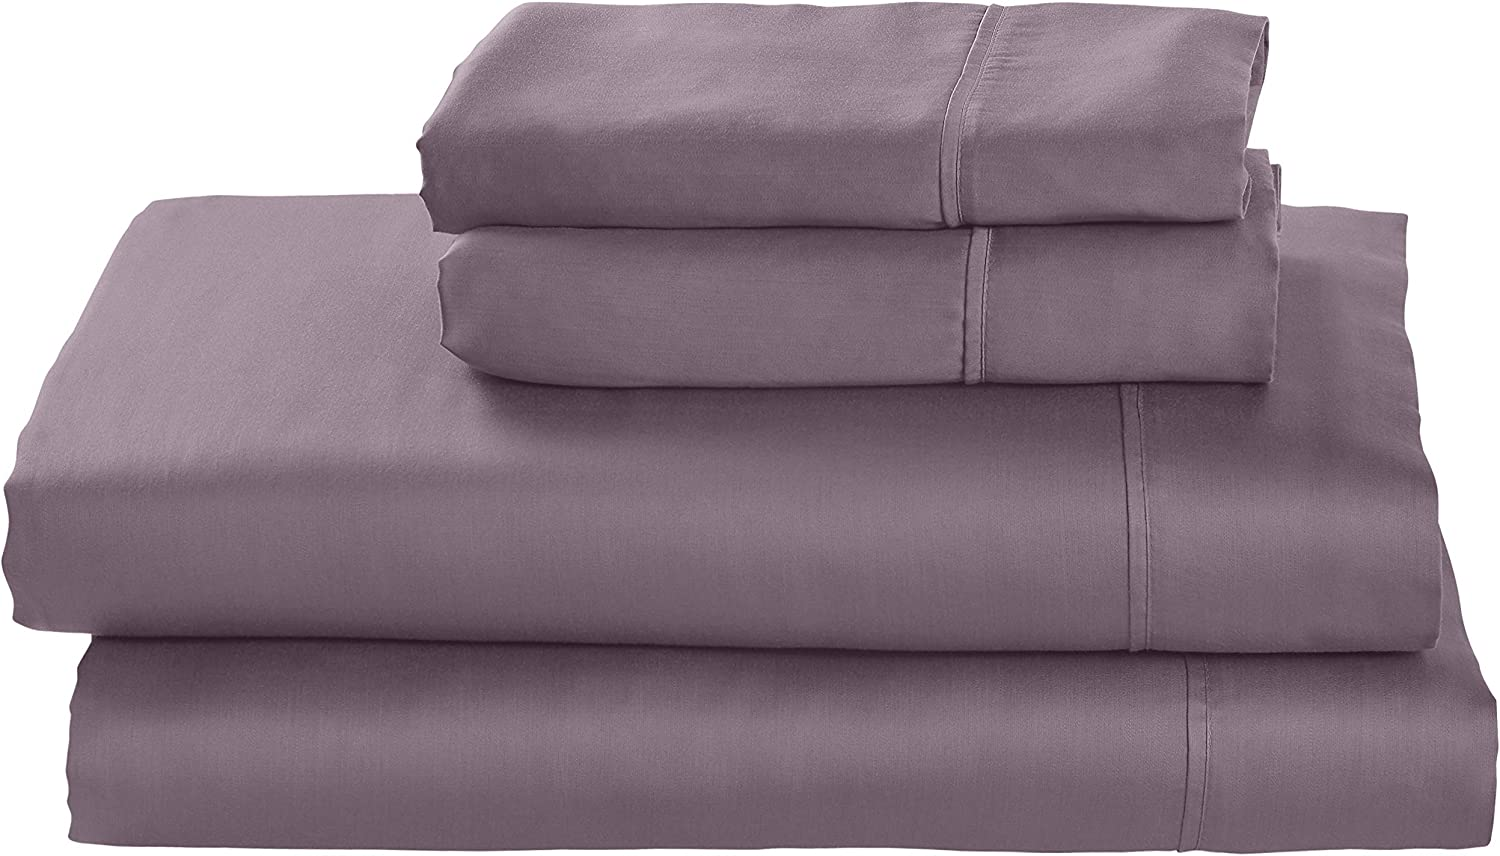 Amazon Brand – Stone & Beam Wrinkle-Resitant 100% Tencel Bed Sheet Set, Queen, Mulberry